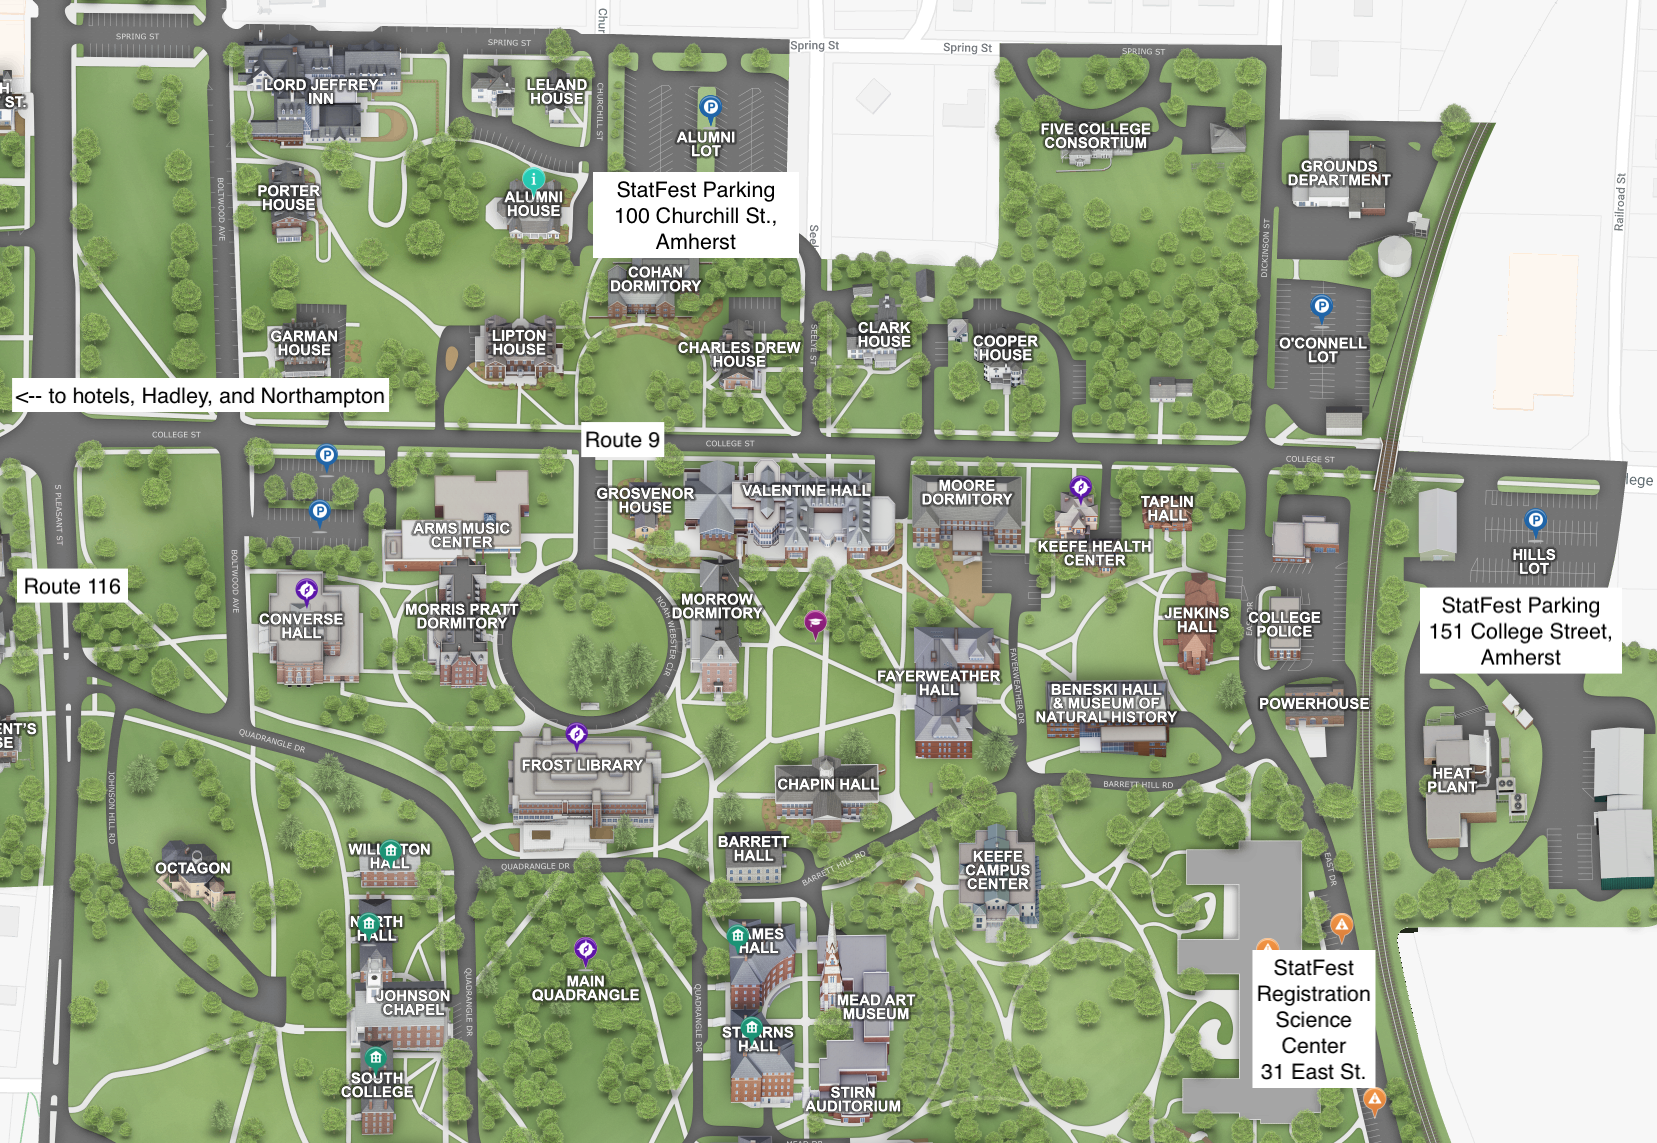 Amherst College Map Travel and logistics information